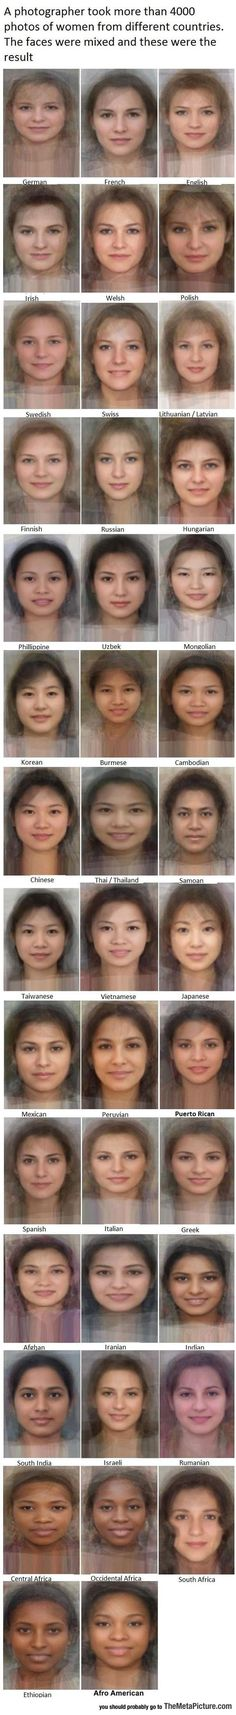 Average+Woman+From+Each+Country